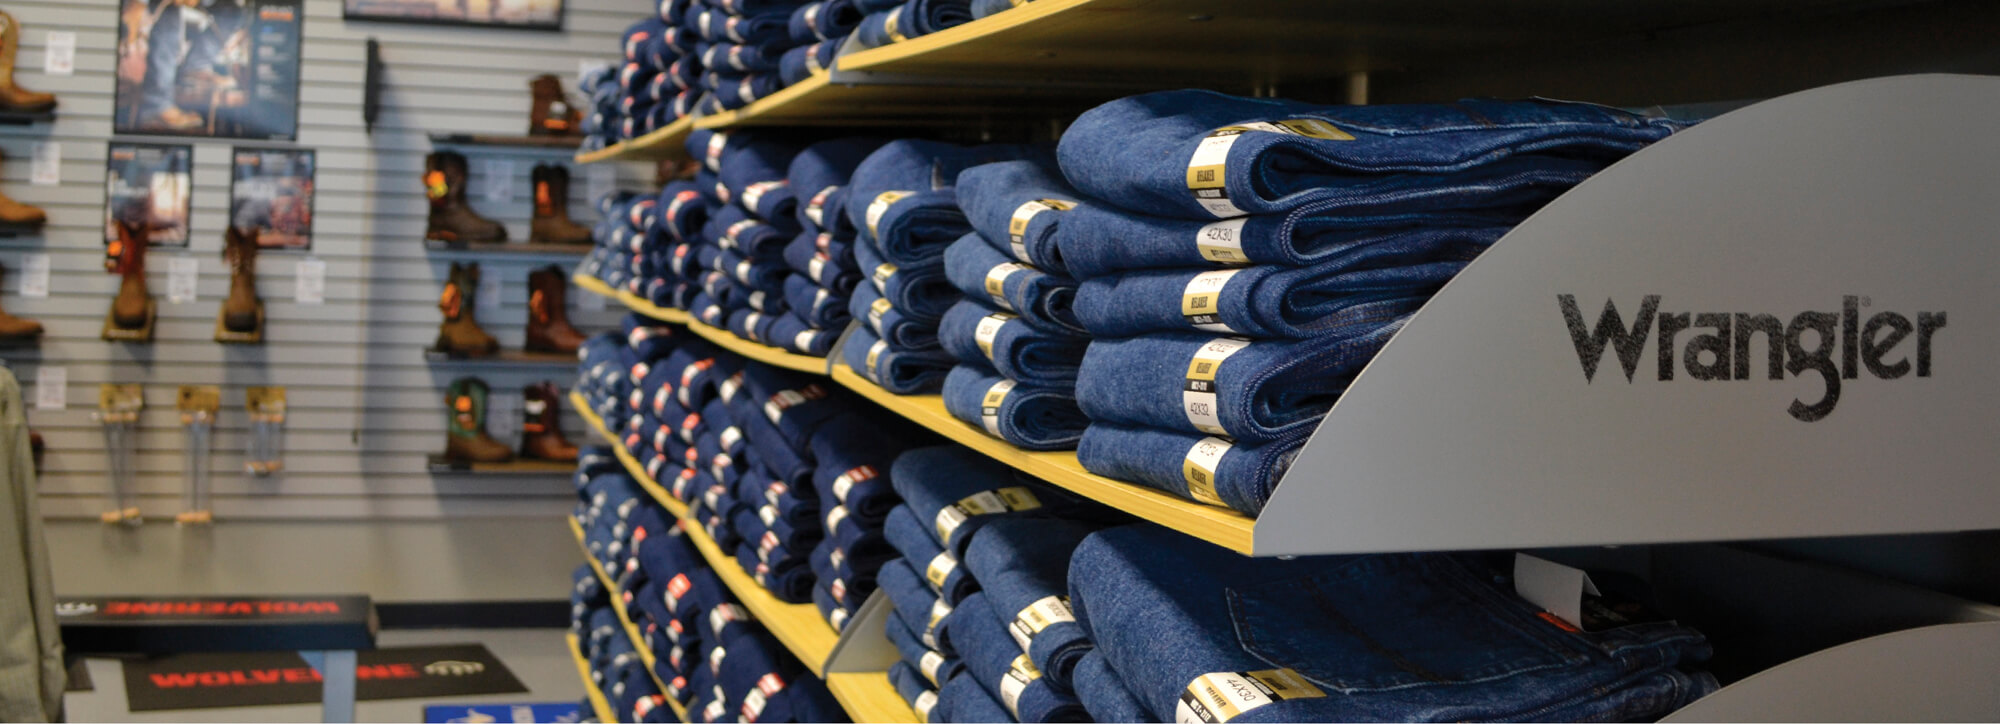 Fr Clothing Stores In Midland Tx